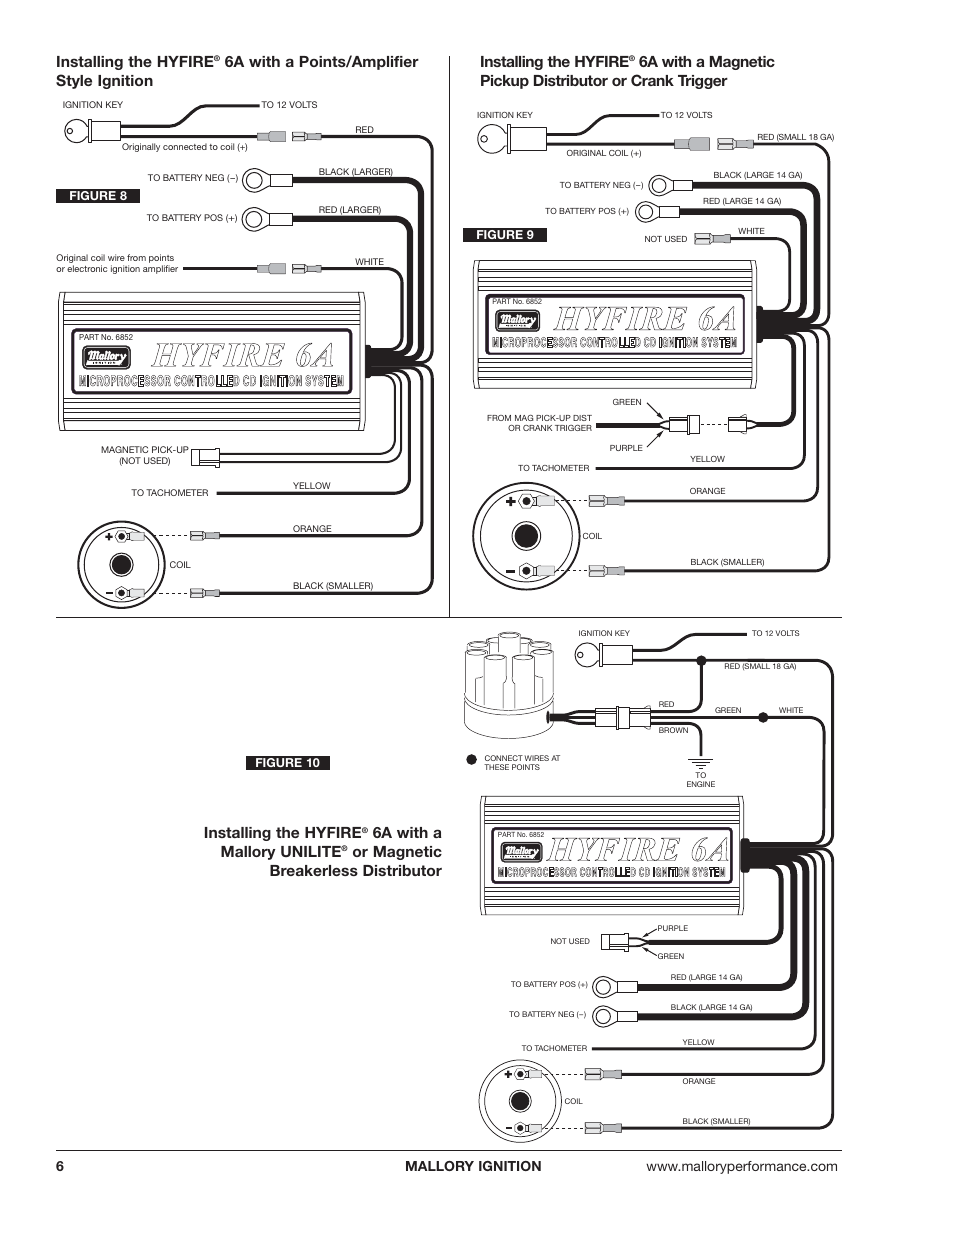 Mallory 6a Ignition Wiring Diagram All Kind Of Diagrams Electronic Distributor Hyfire And 6al Series Controls 6852m 6853m User Promaster